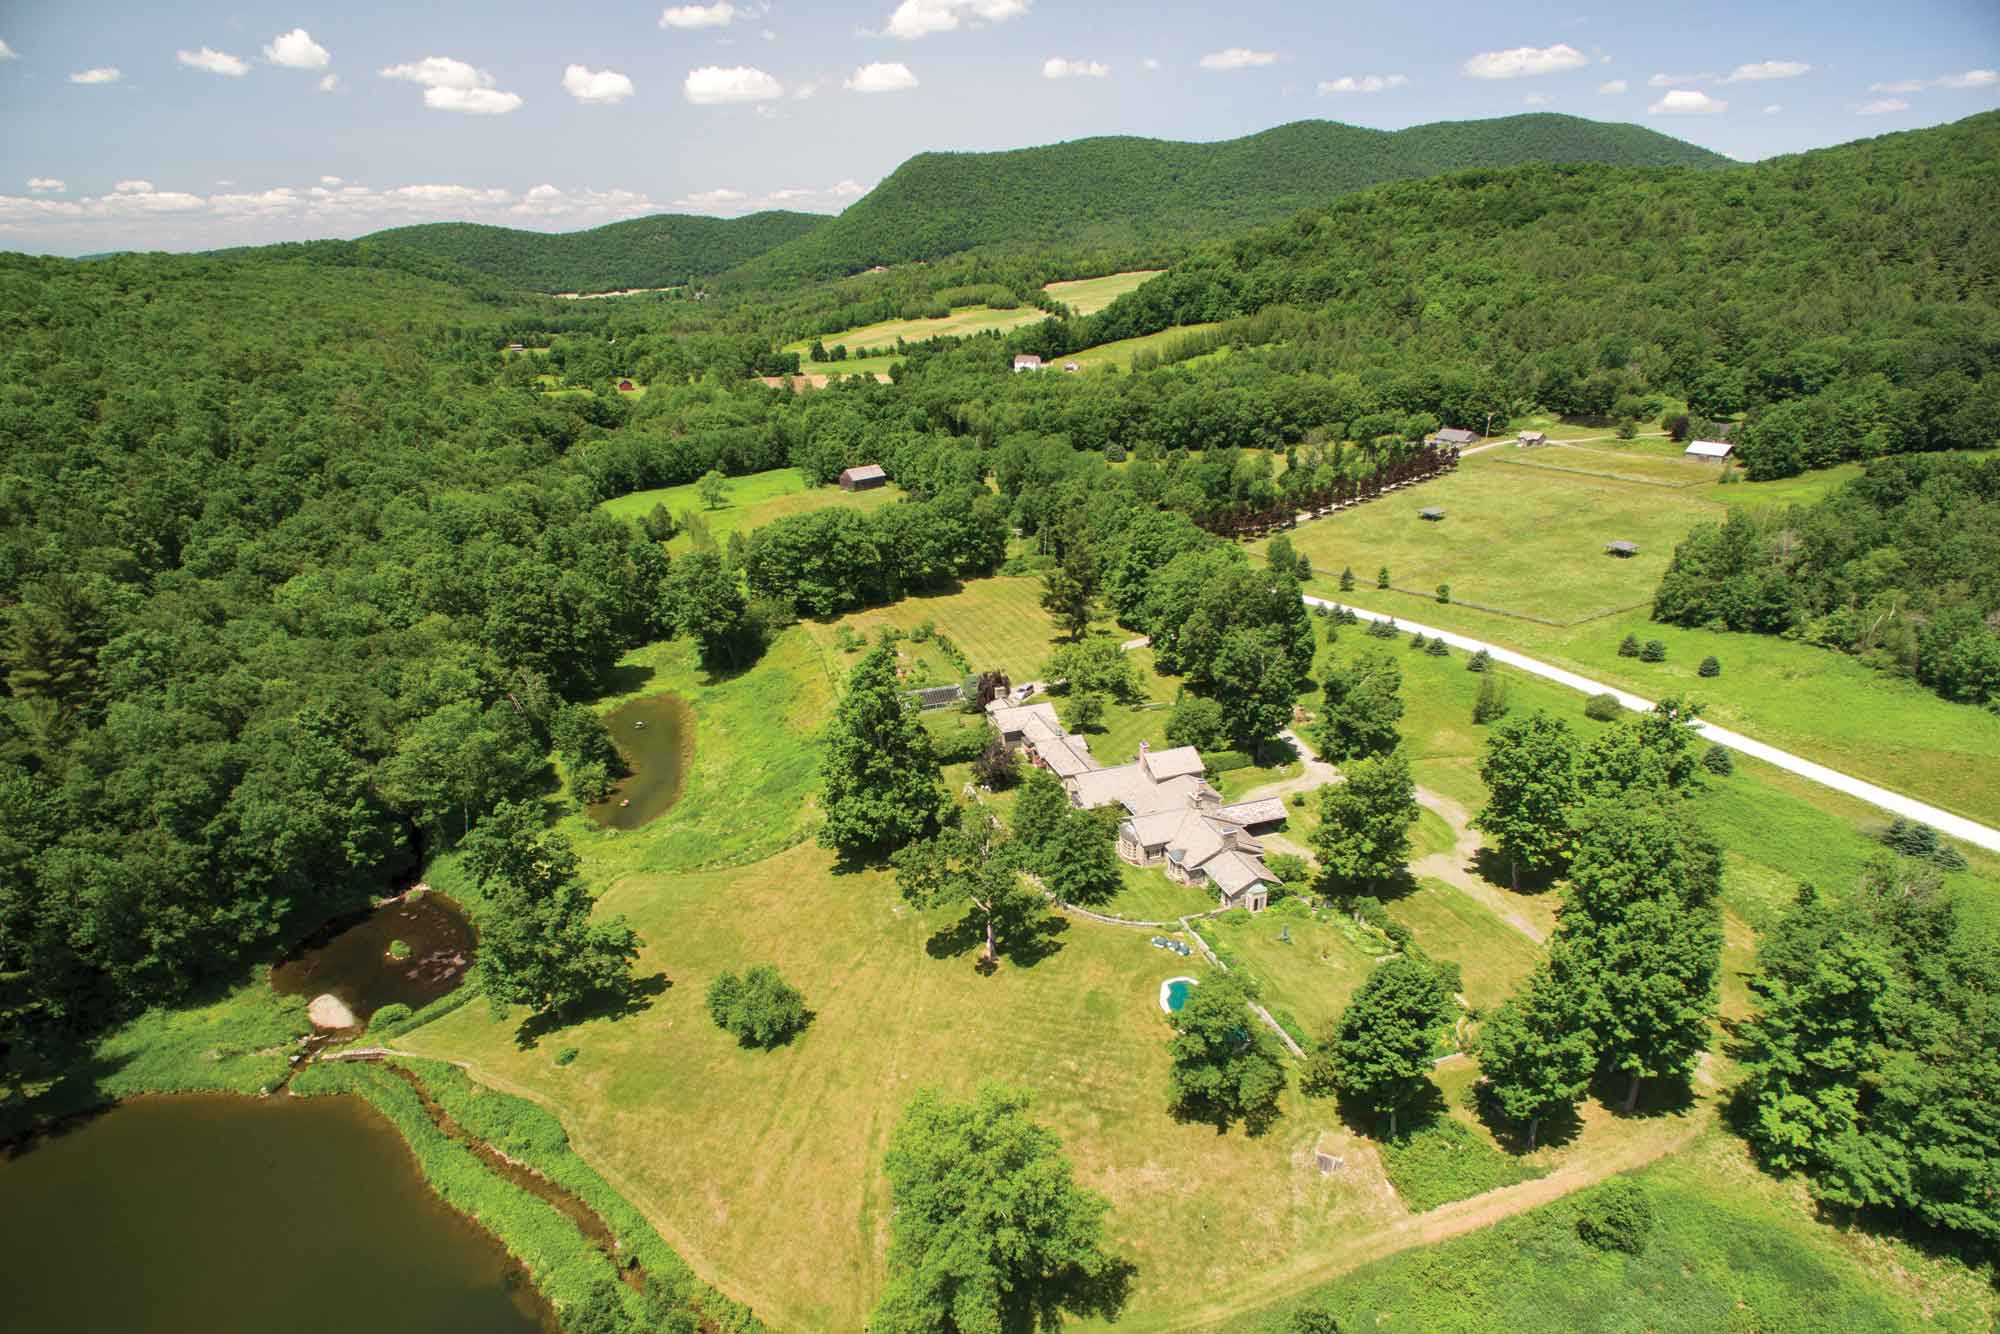 The allure of Black Hole Hollow Farm goes far beyond its pastoral beauty. For a time, the 948-acre estate was the summer retreat and place of inspiration for Ian Fleming, the legendary British novelist and creator of Agent 007—James Bond.